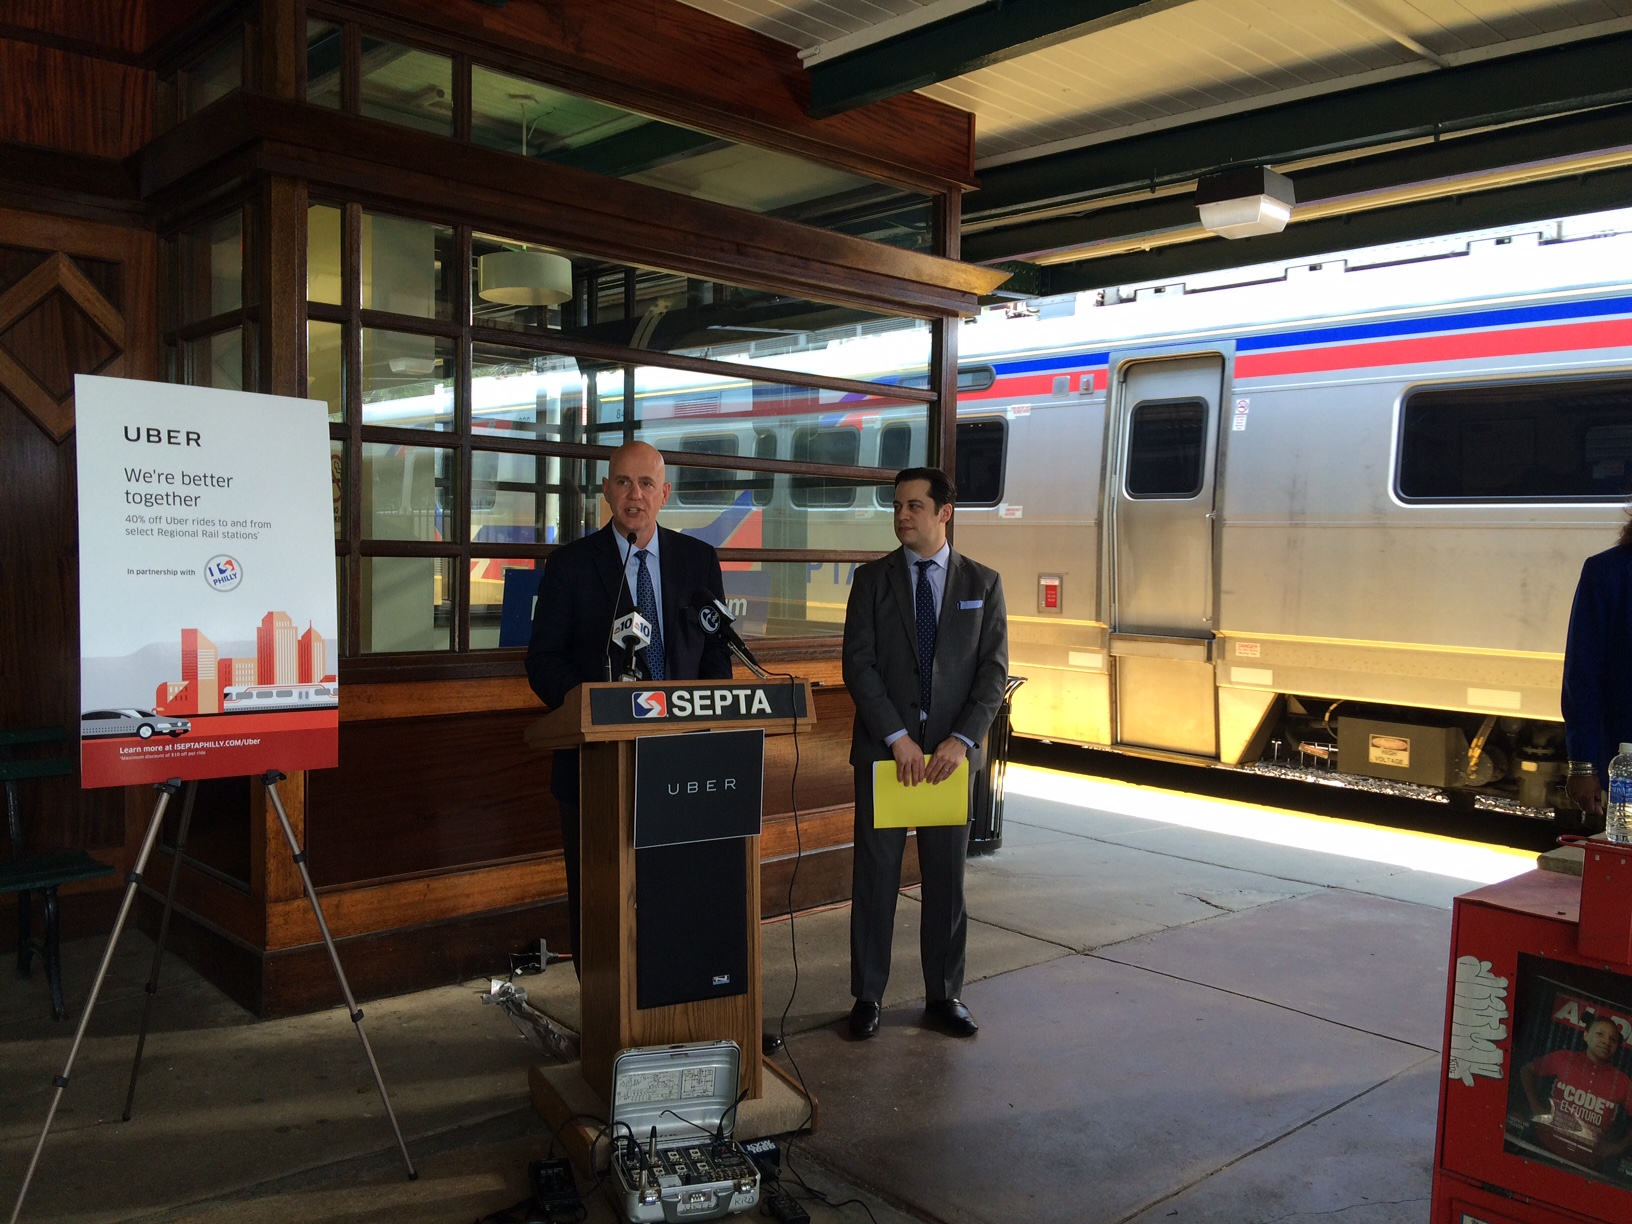 SEPTA GM Jeff Knueppel and Uber GM for PA John Feldman announce 40% off regional rail Uber deal